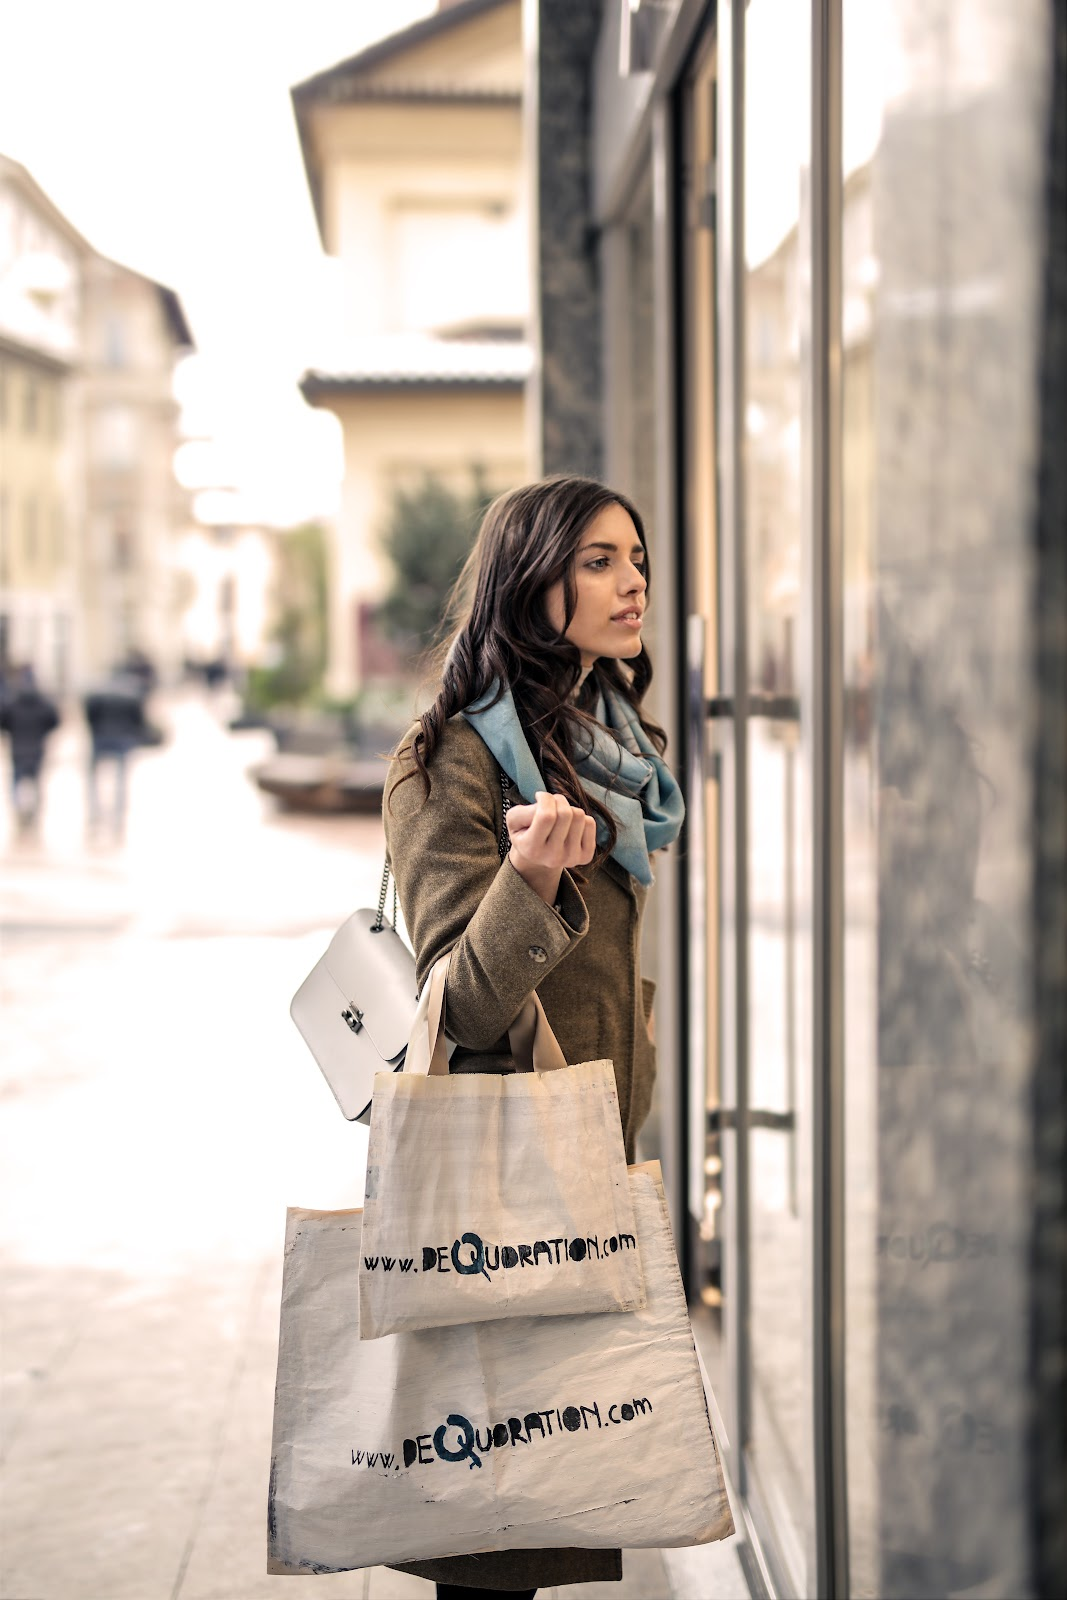 The Real Feel: Improving Your Retail Store Experience